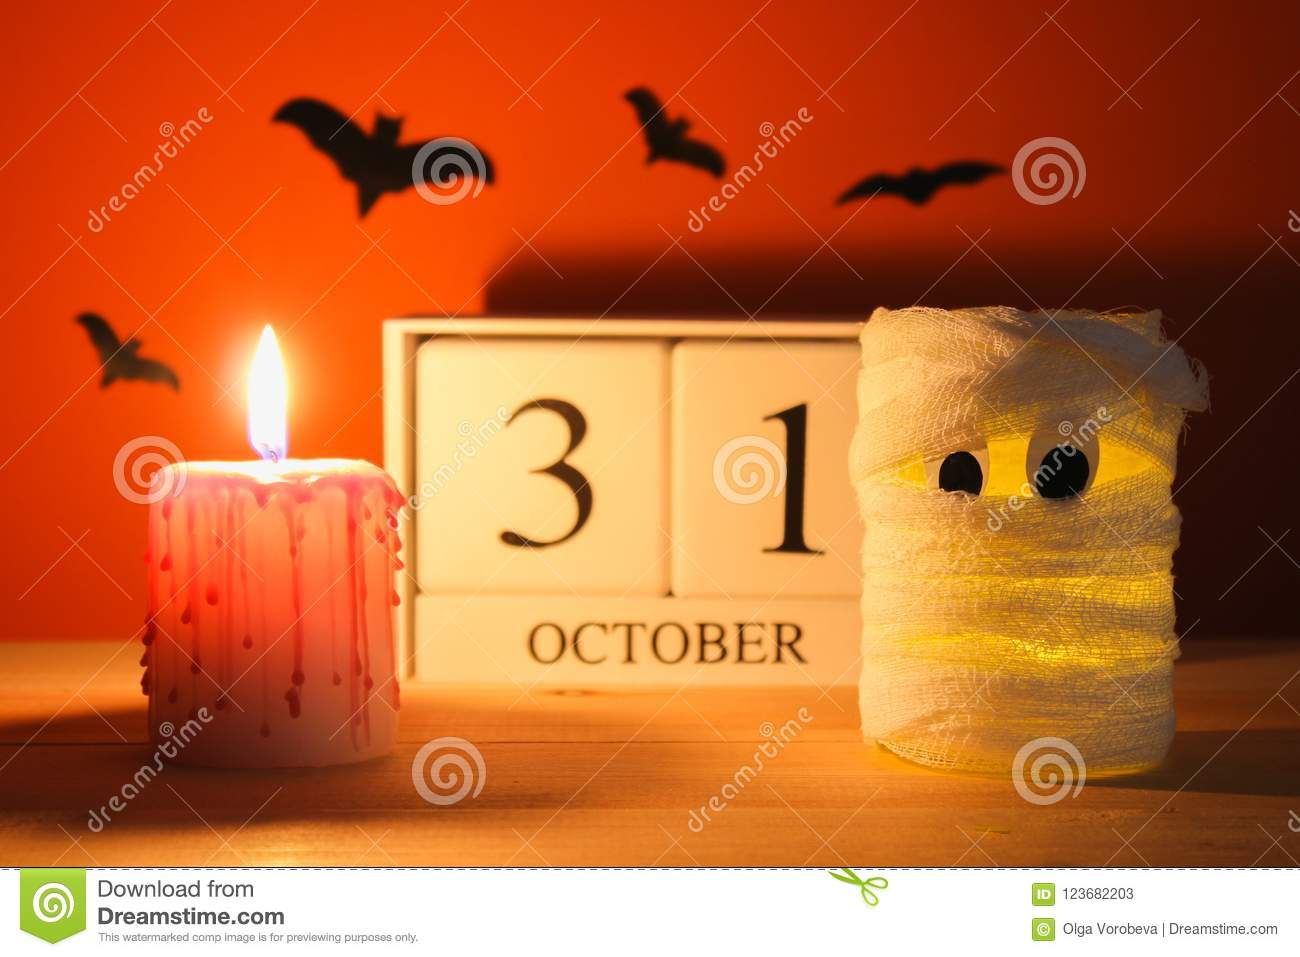 The concept for Halloween. Mummy from a can, gauze and candles, a wooden calendar showing October 31.